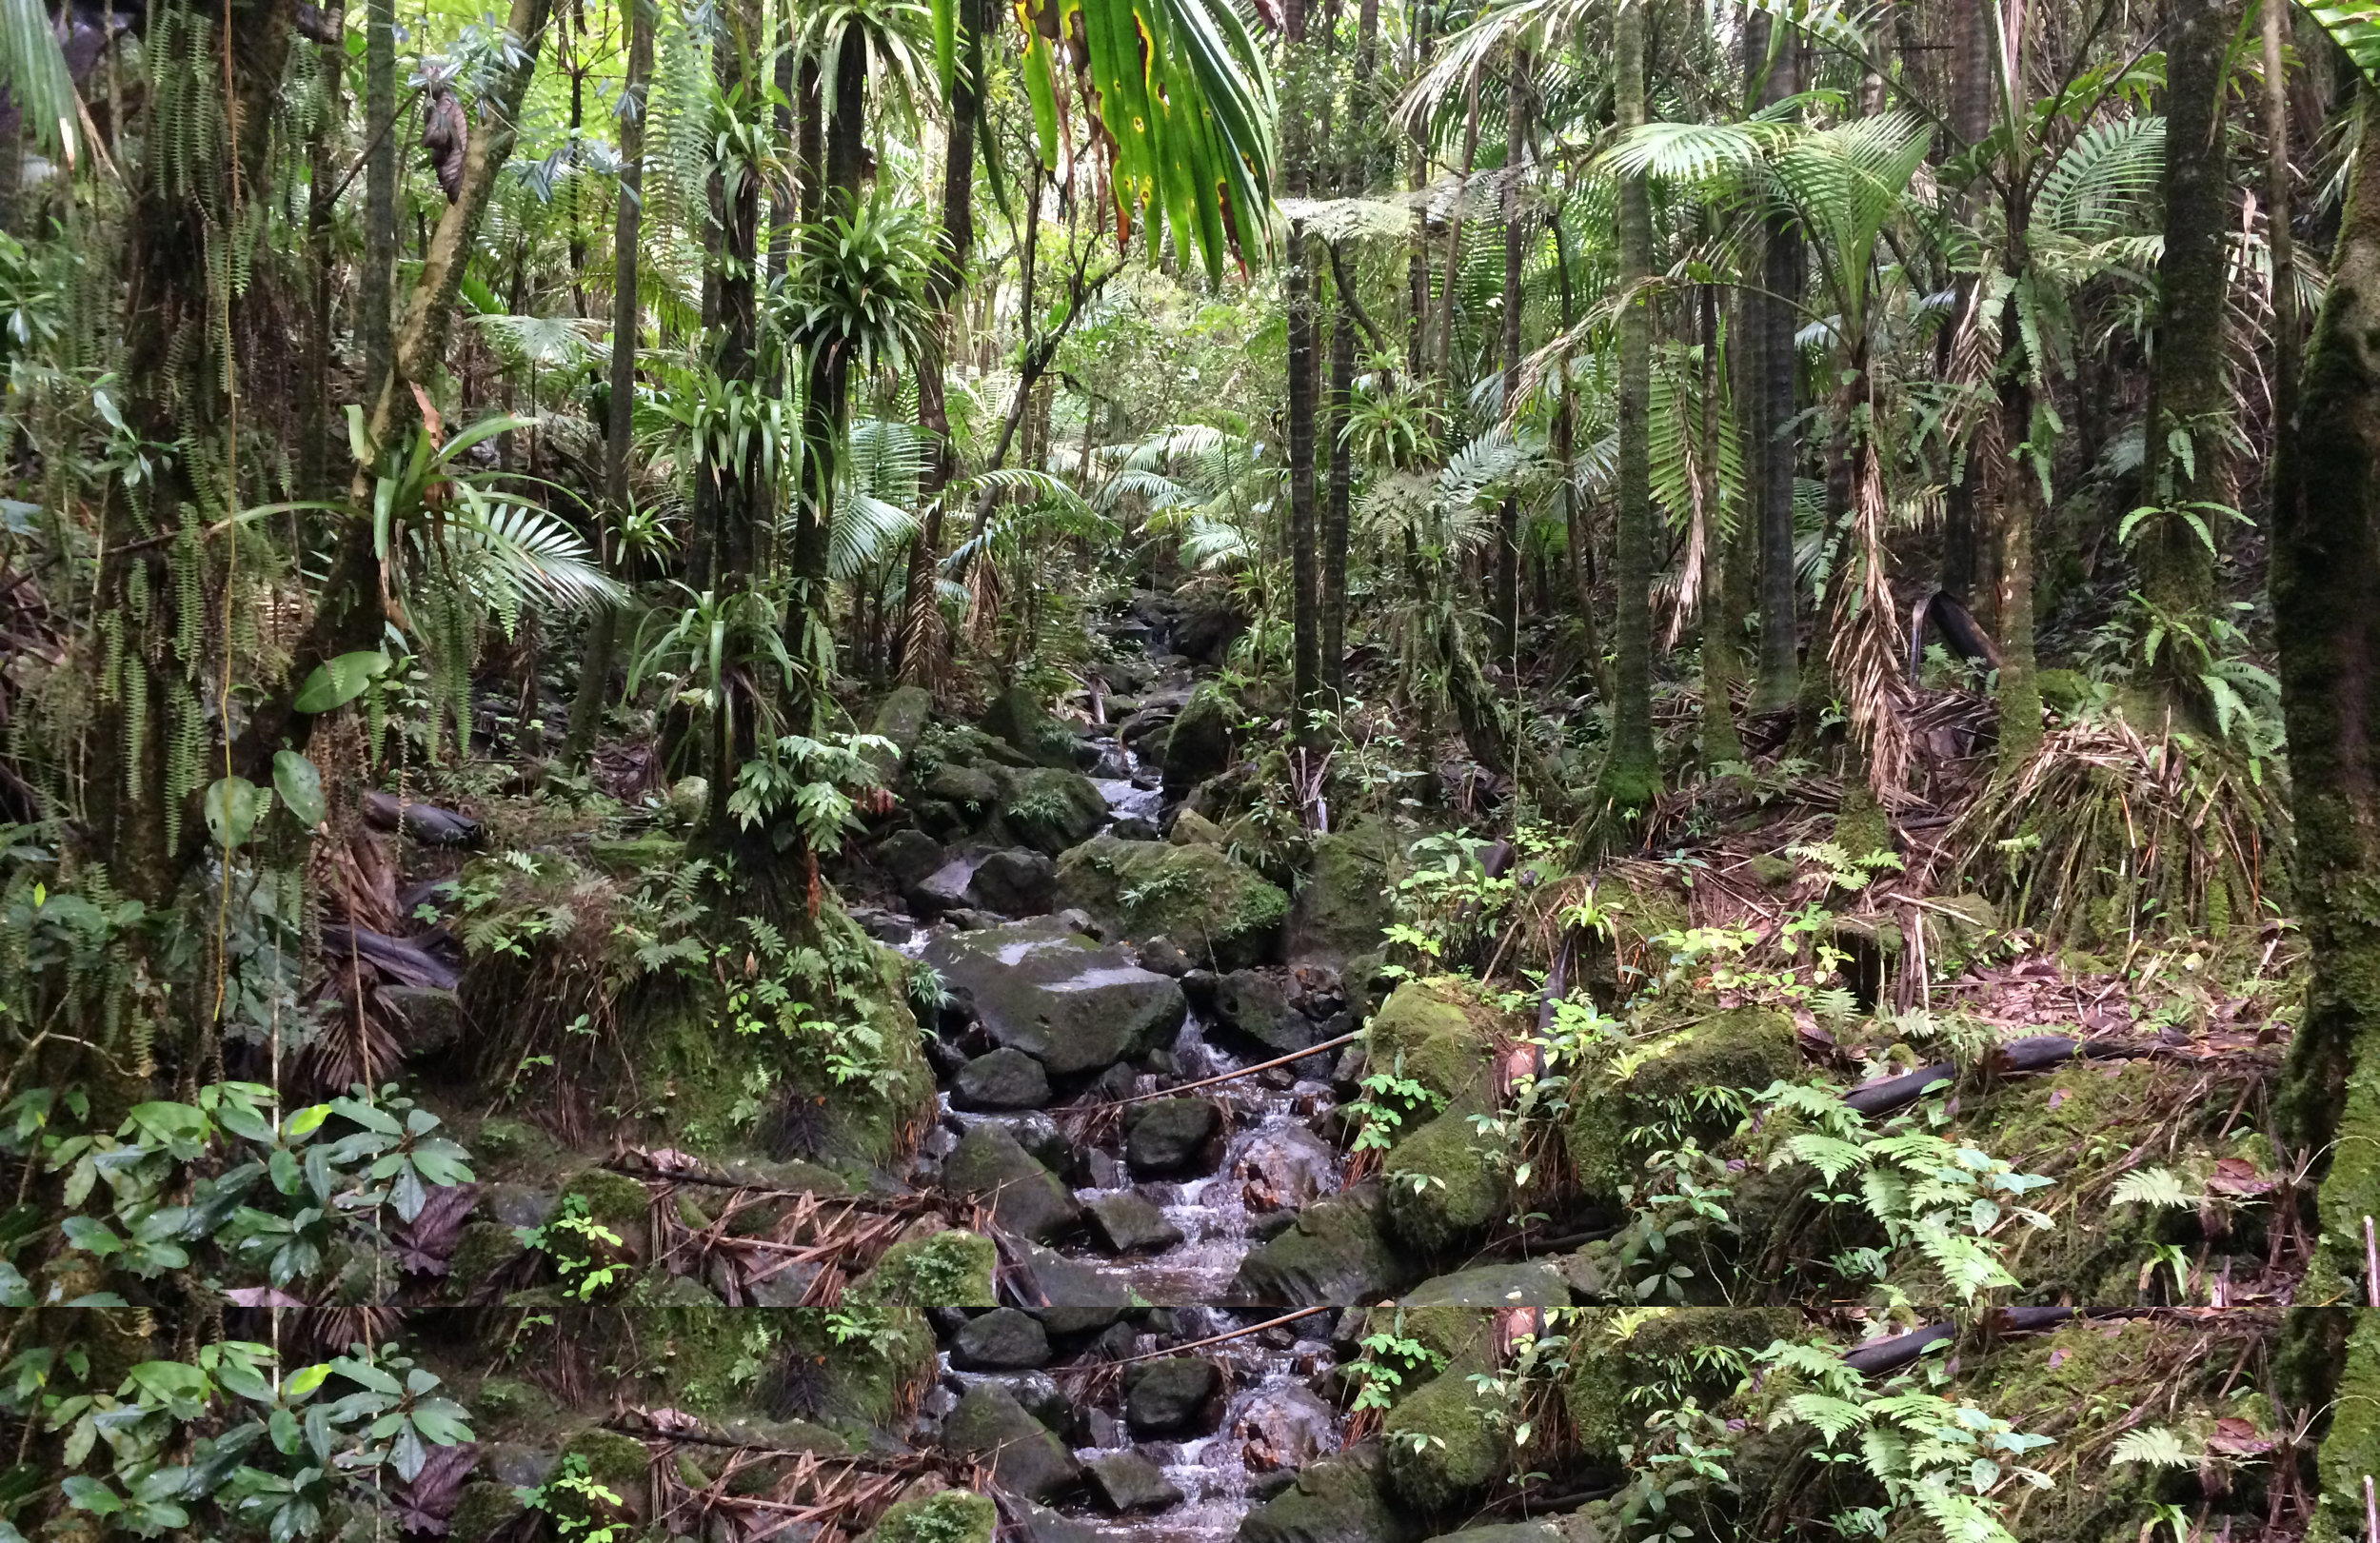 Hiking in the El Yunque National Forest at the 2016 Gene Families & Isozymes Meeting in Rio Grande, Puerto Rico.